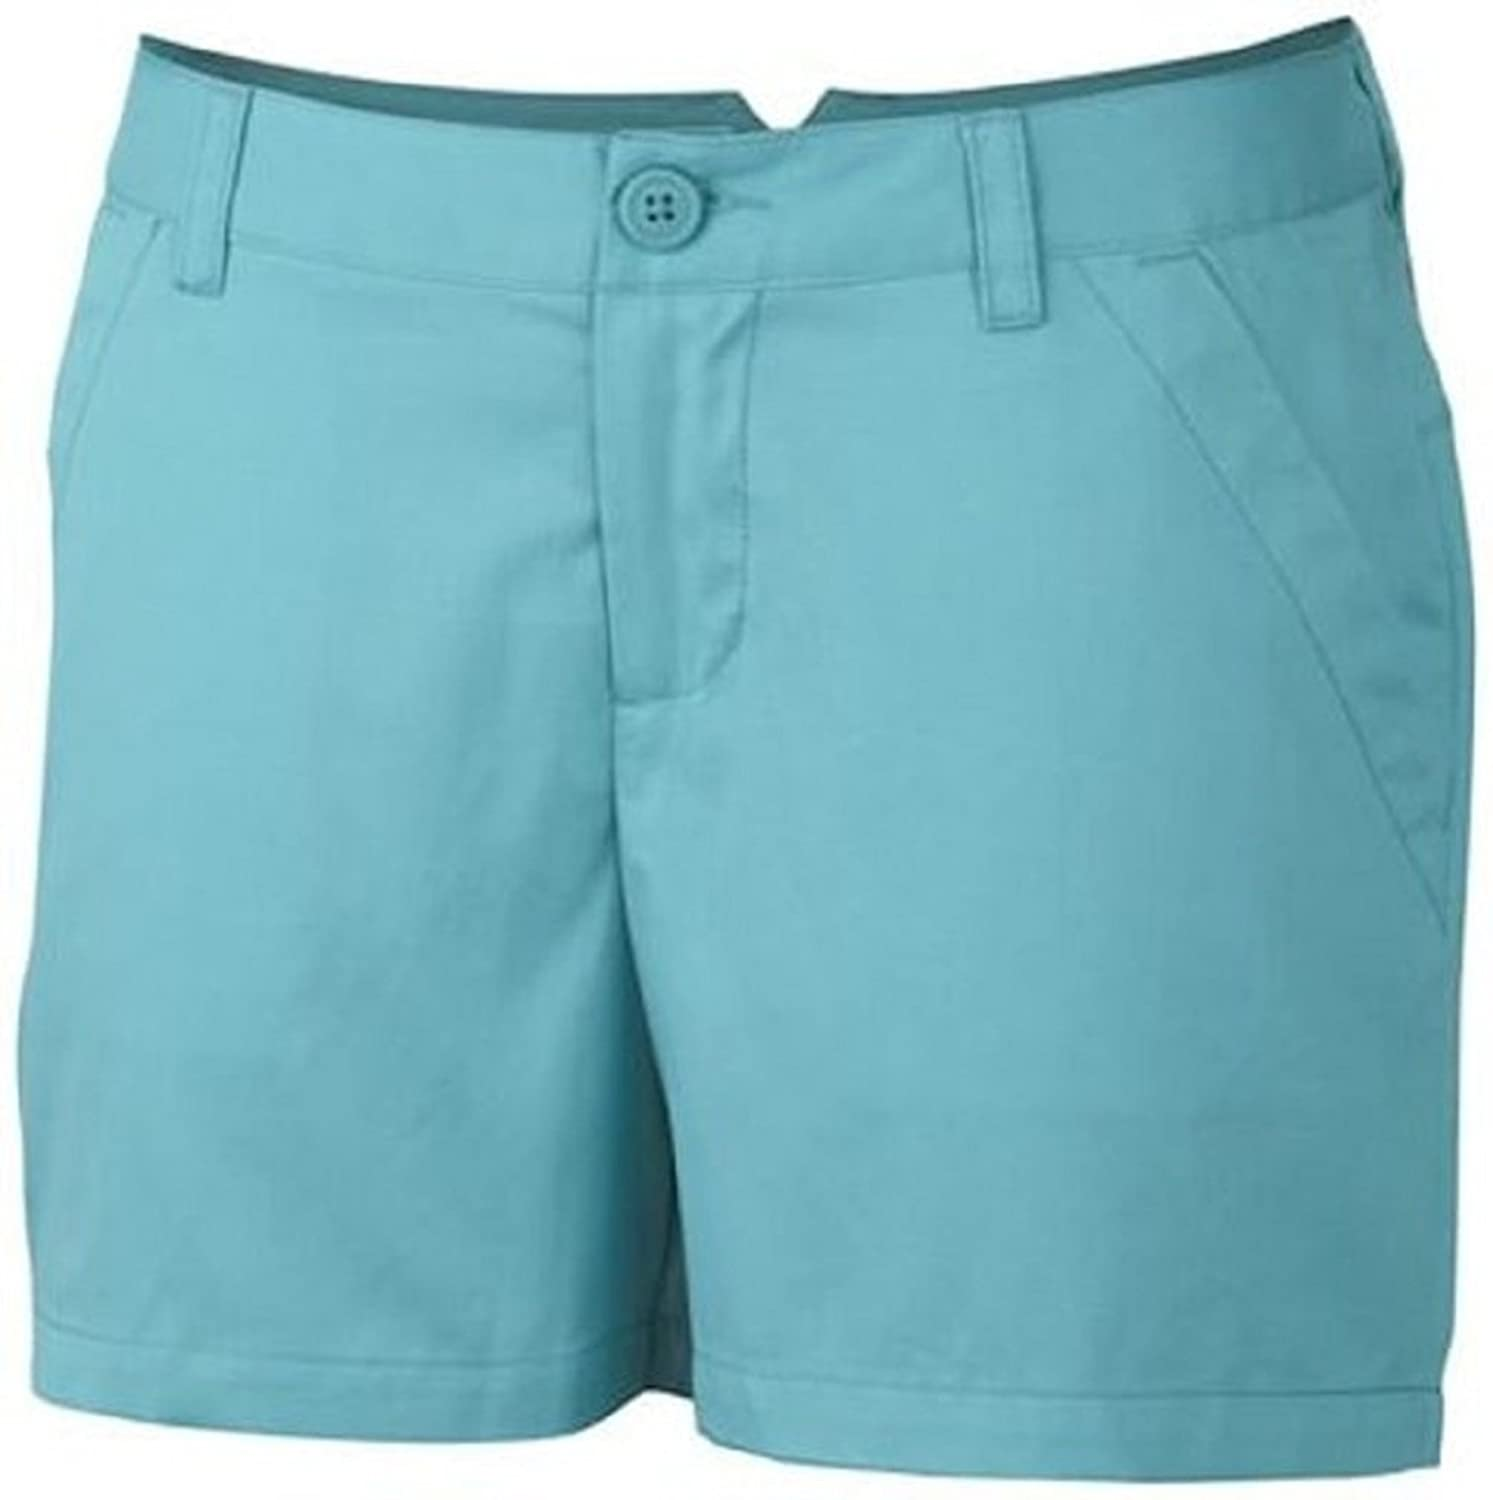 Columbia Women's Kenzie Cove Short Geyser - Size 2